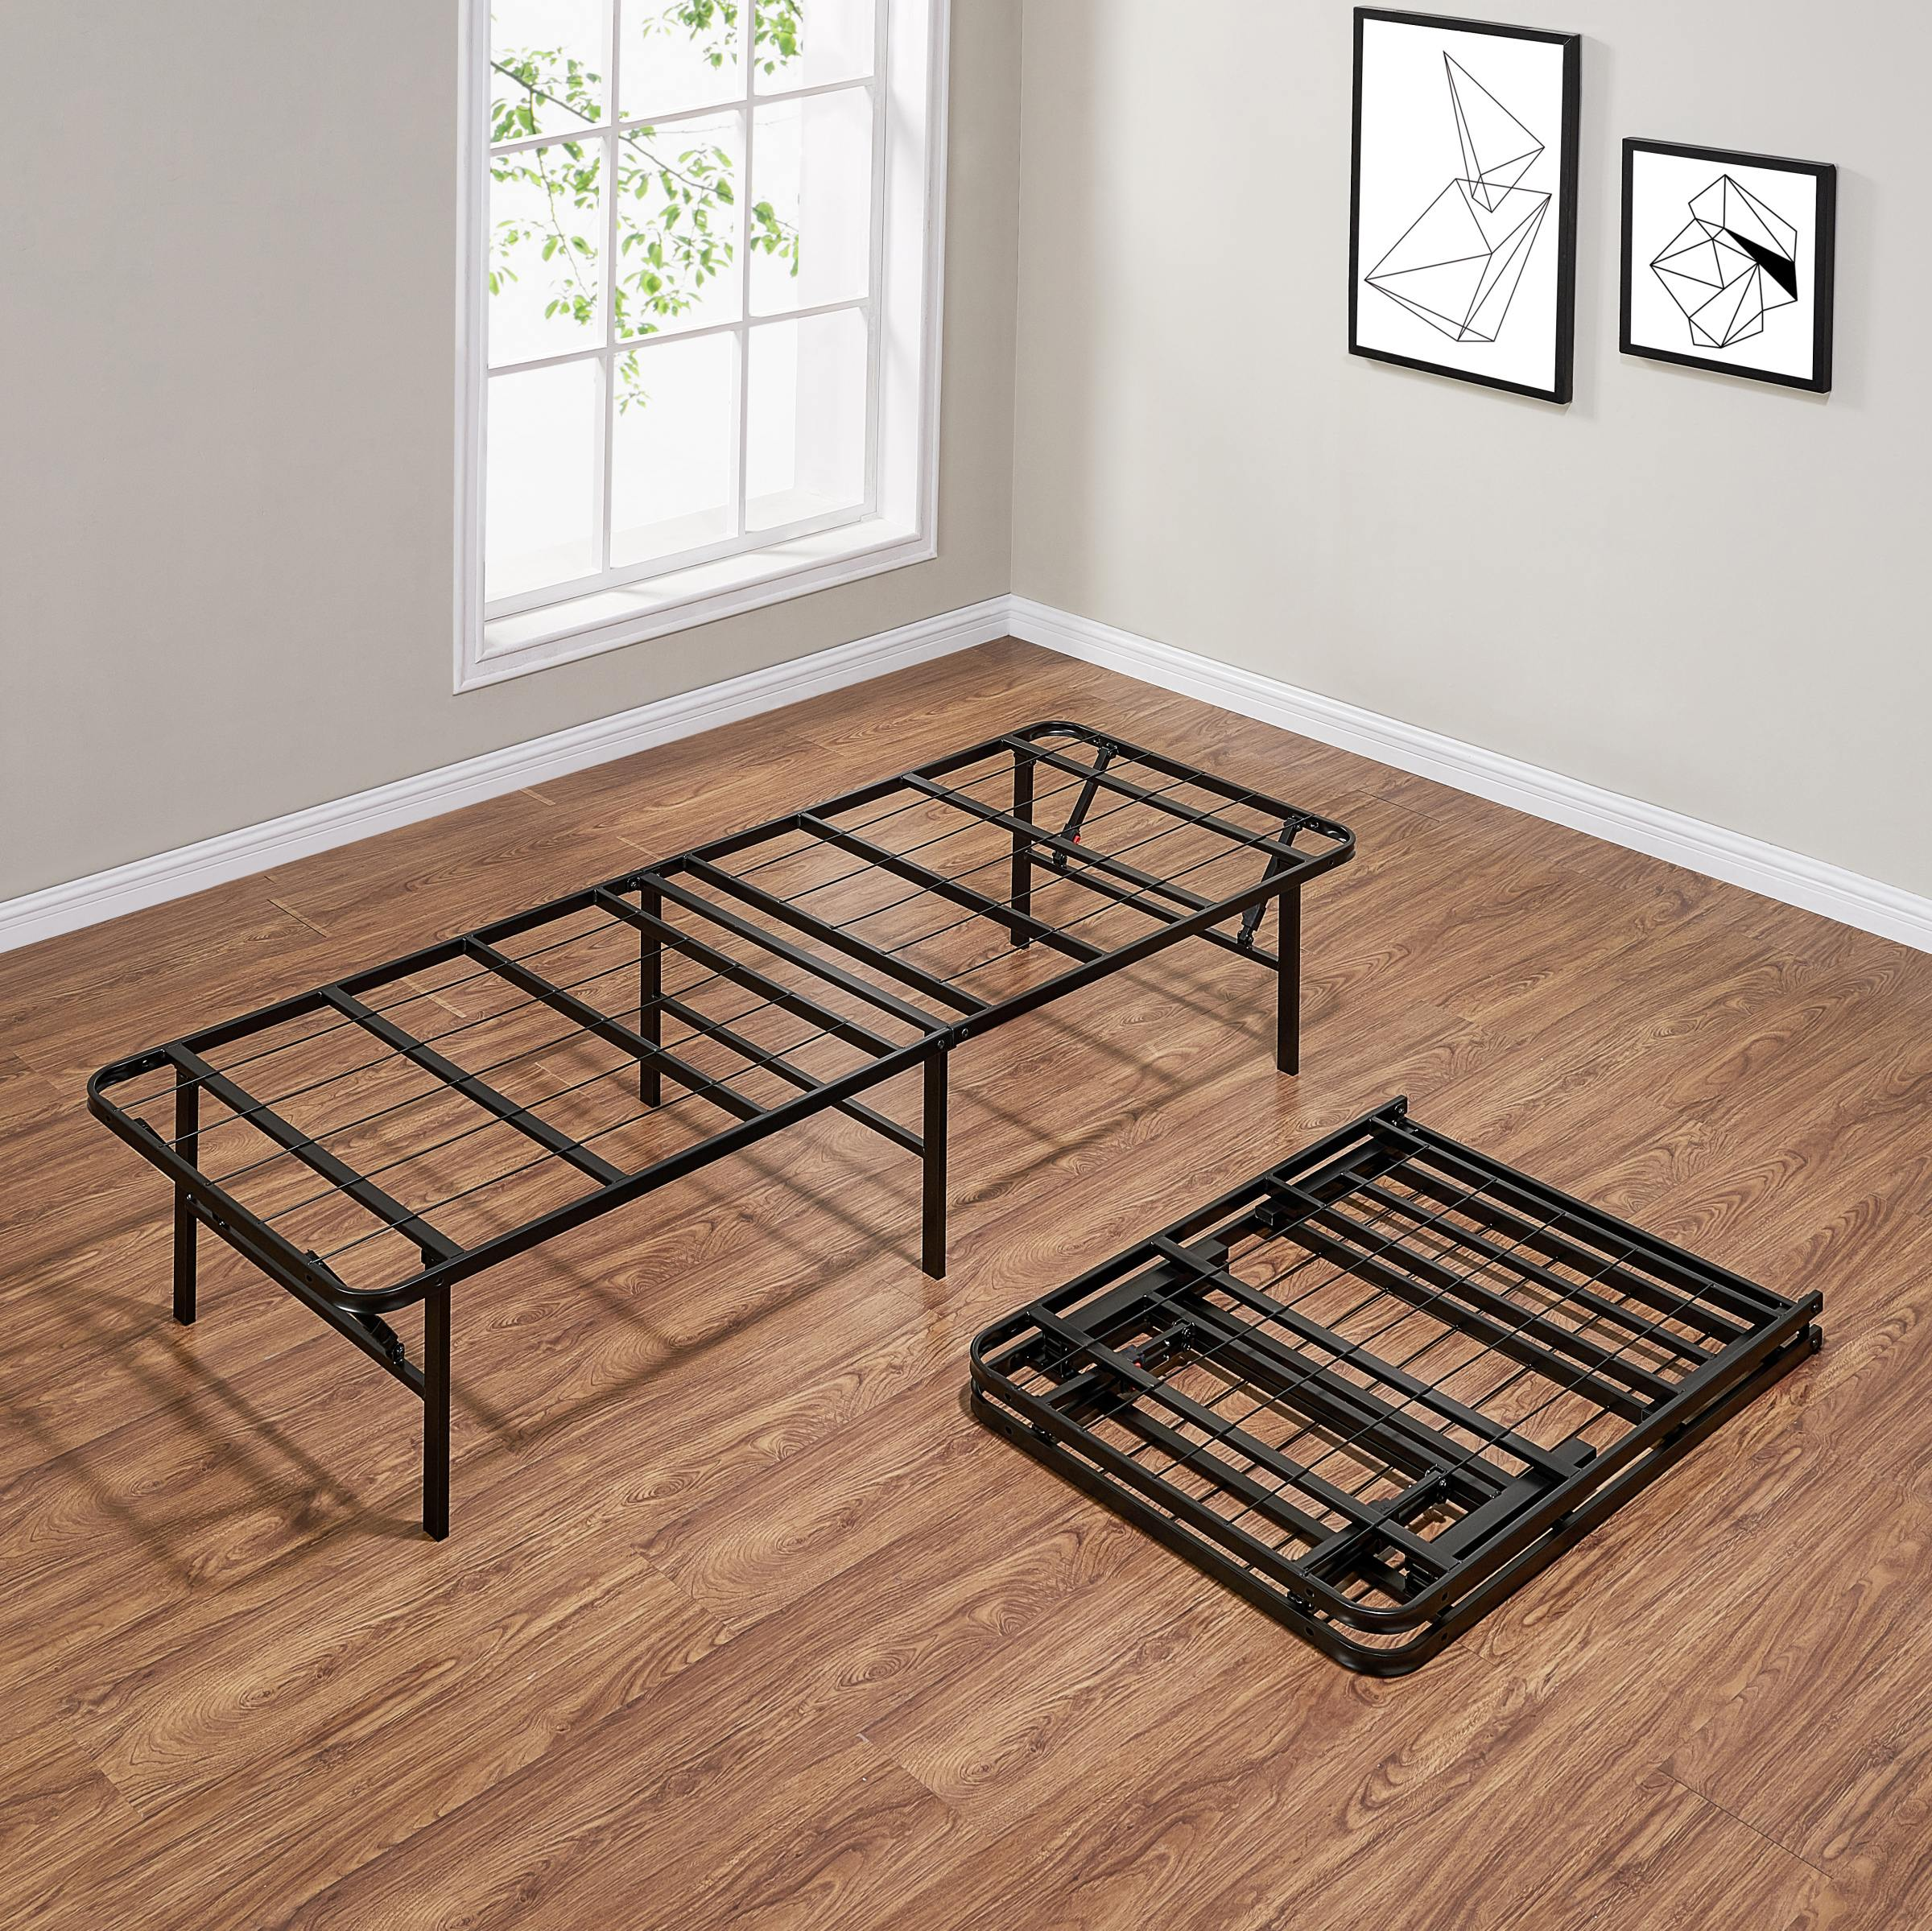 - 14″ High Profile Foldable Steel Bed Frame/Twin Bon Furniture